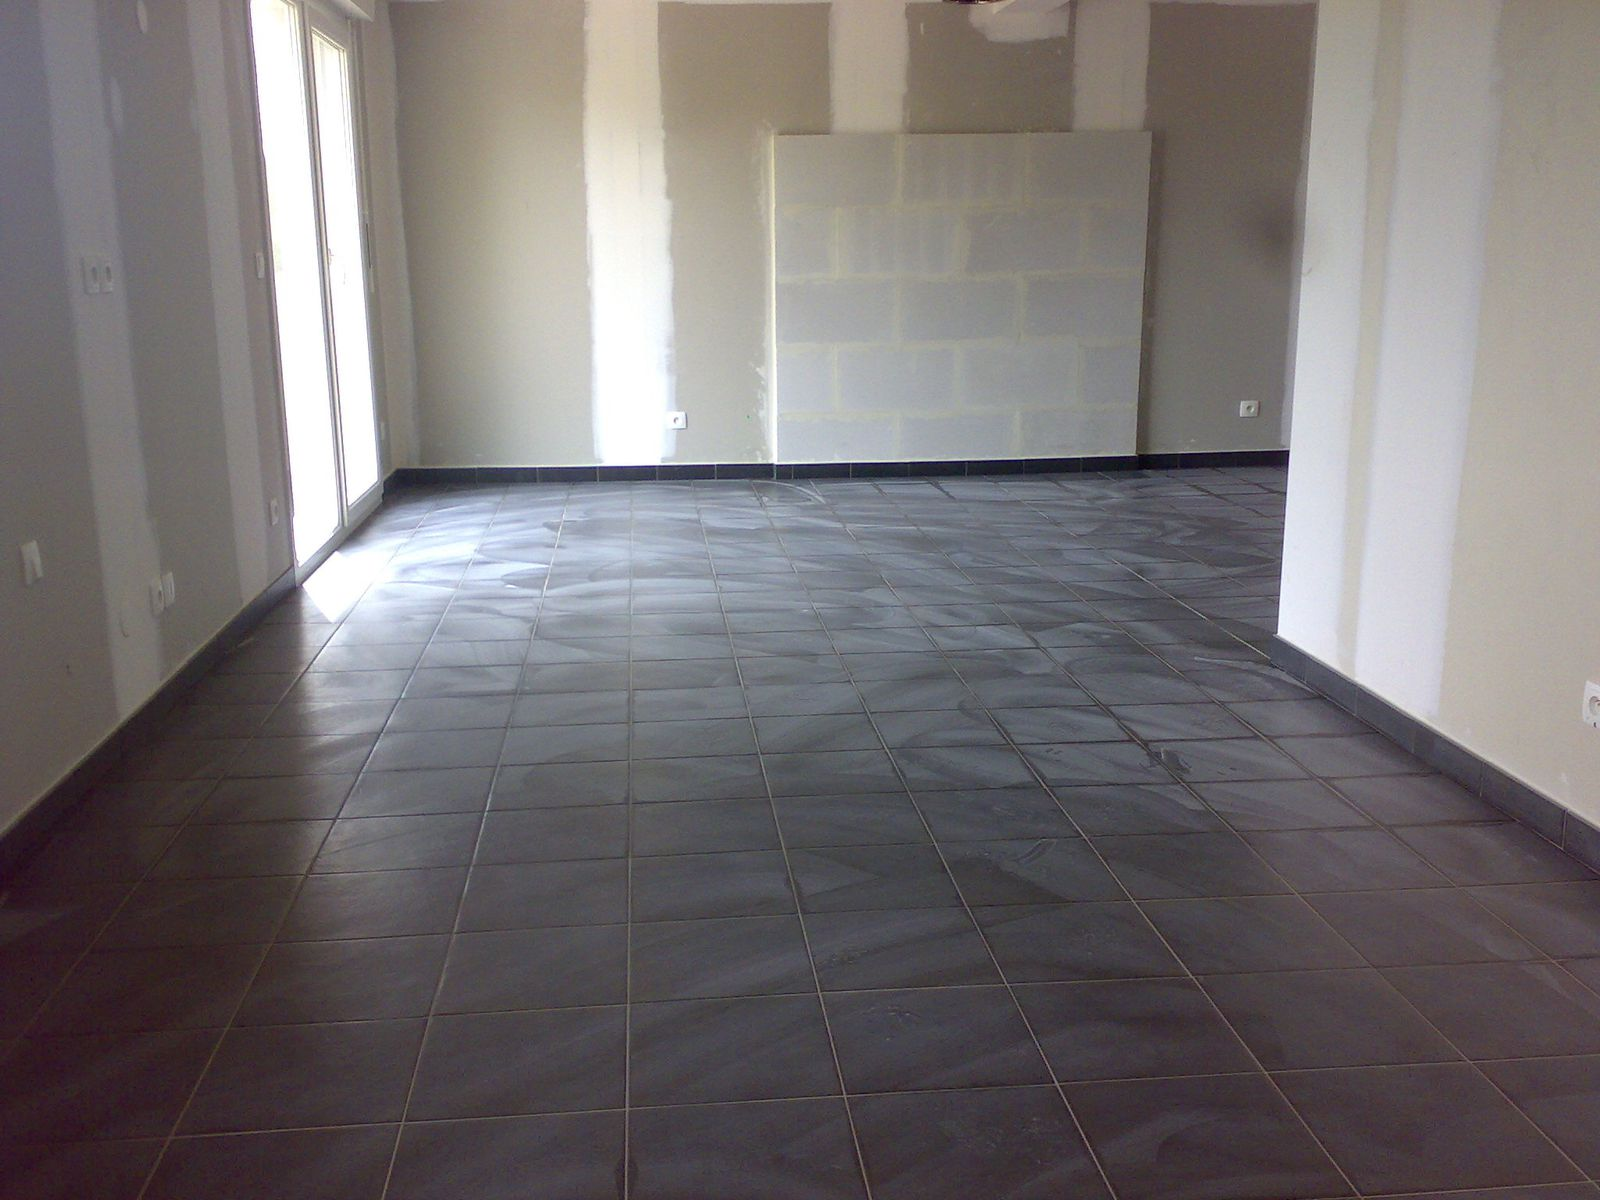 Carrelage termin construction maison batig re for Carrelage diagonale